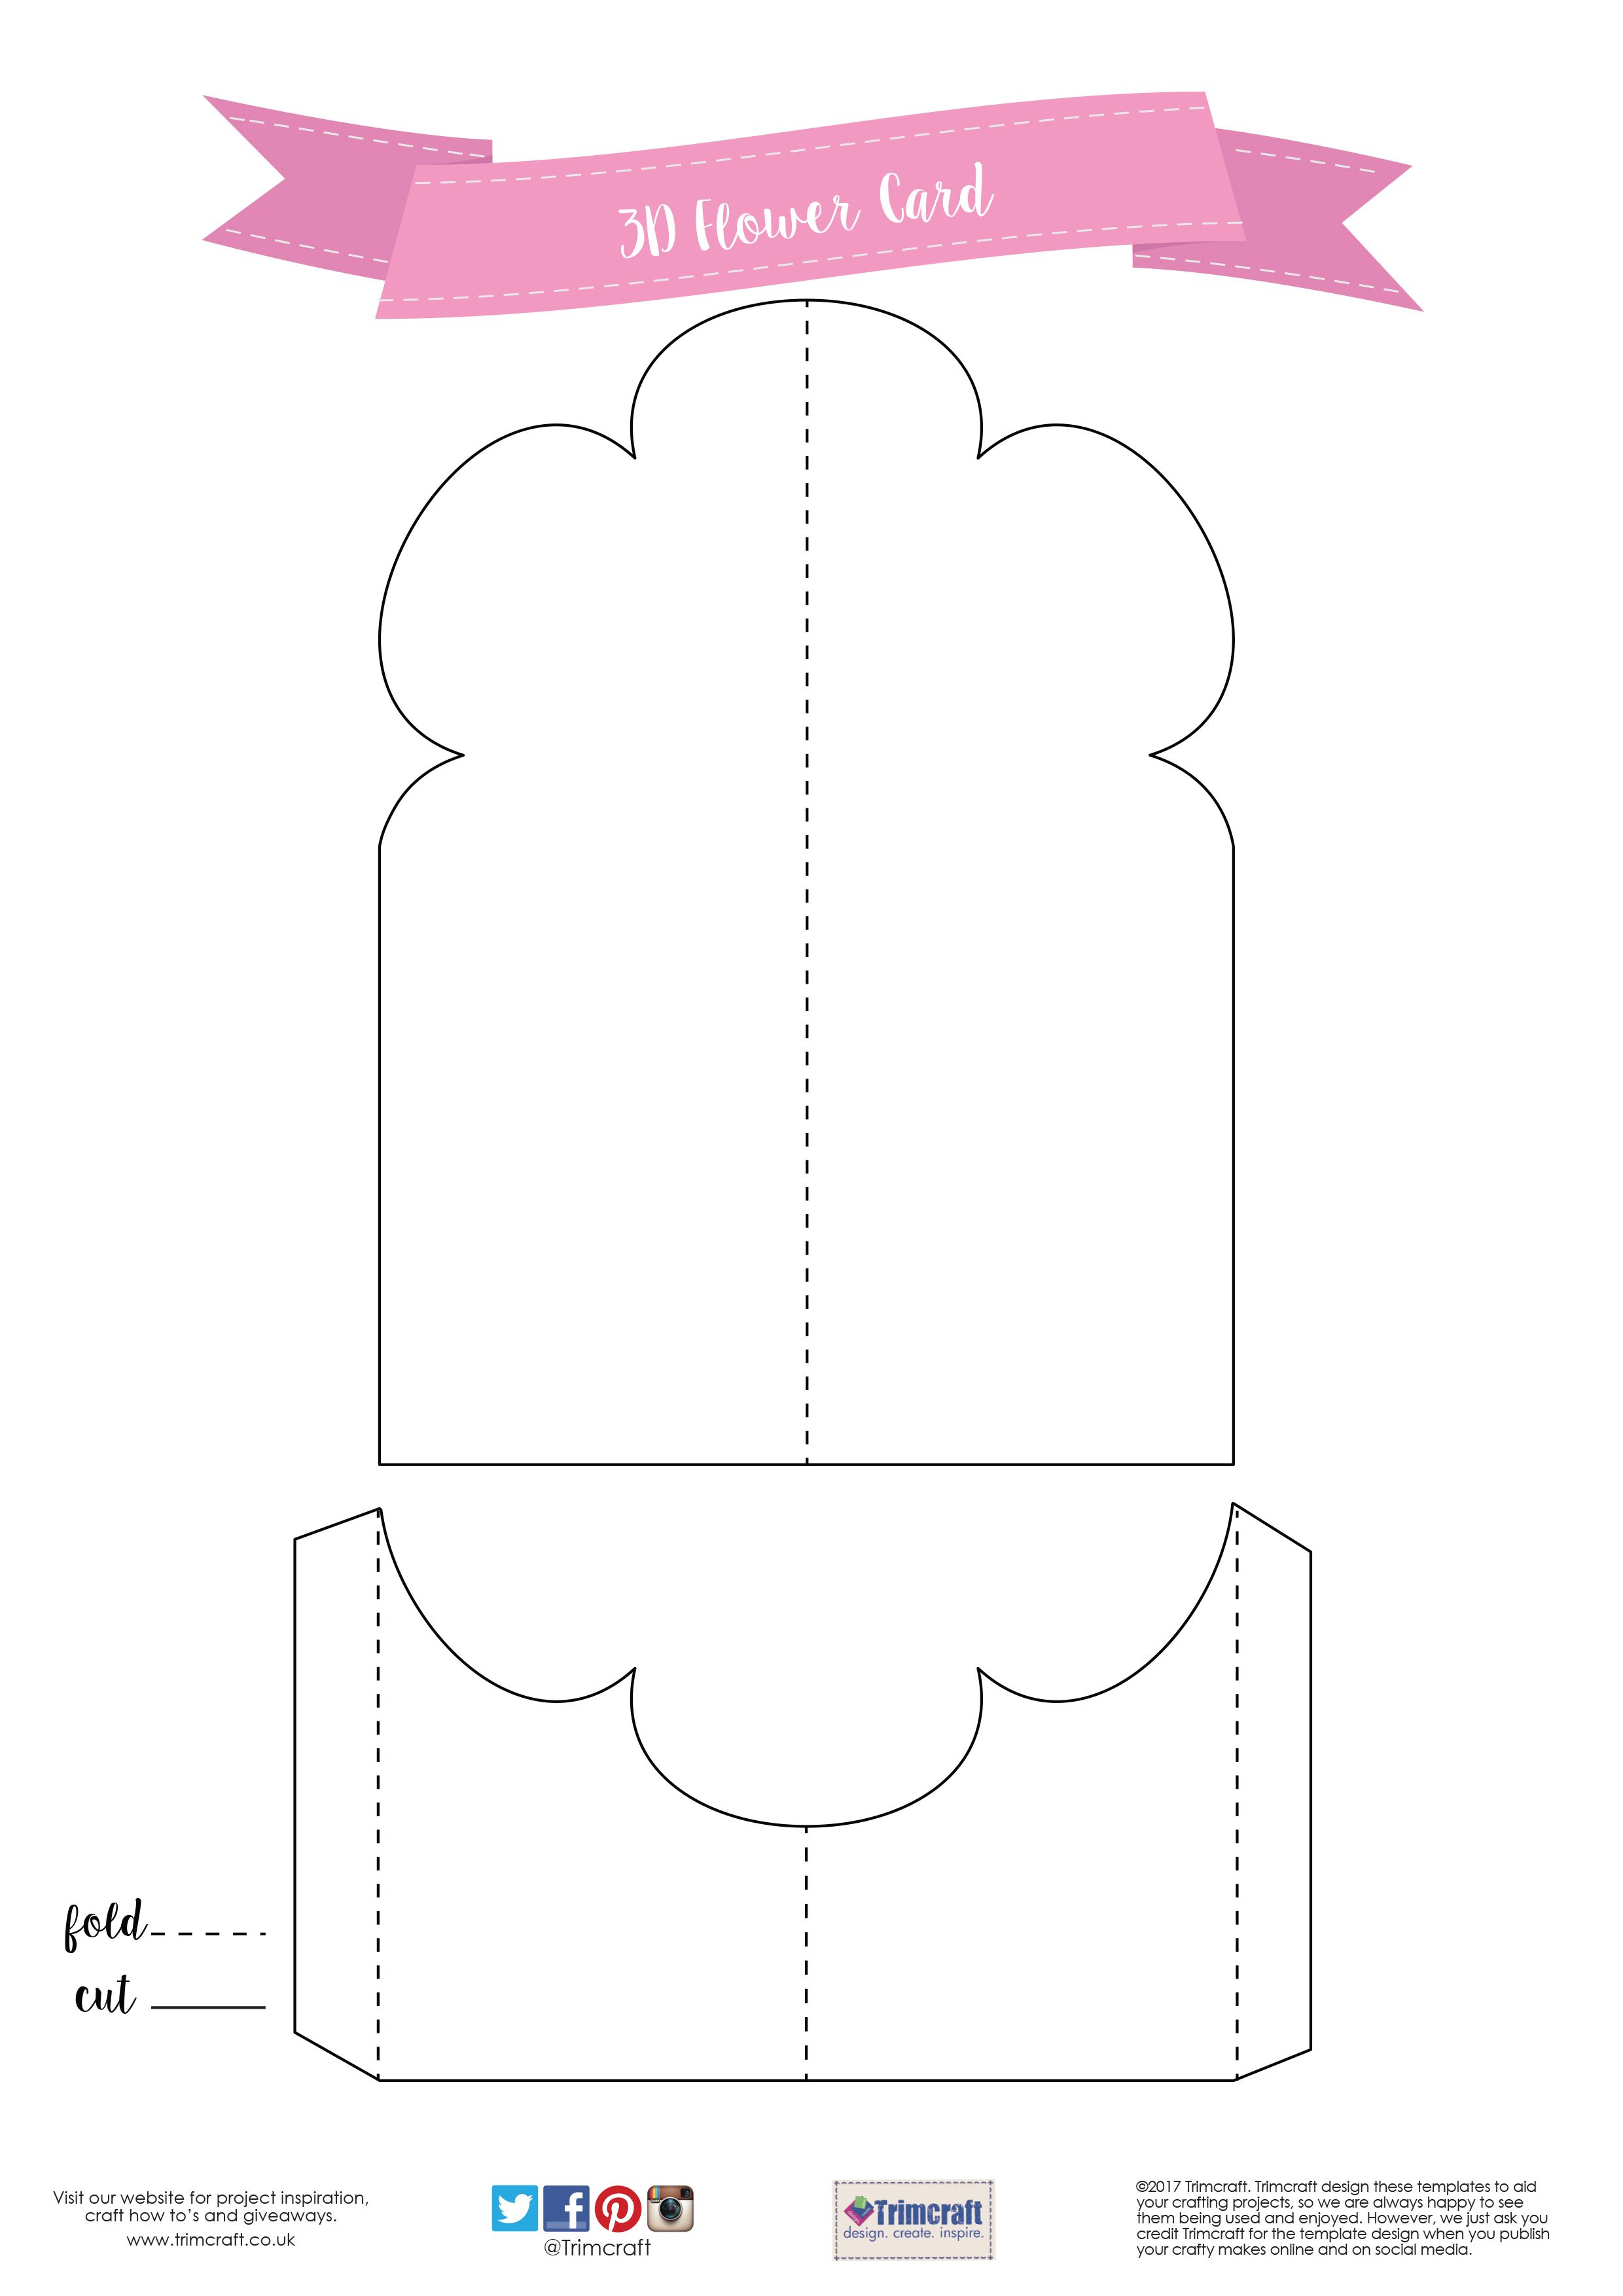 Card Shape Of The Month 3d Flower Card Making Tutorial With Free Printable Template Card Making Templates Cards Card Templates Free